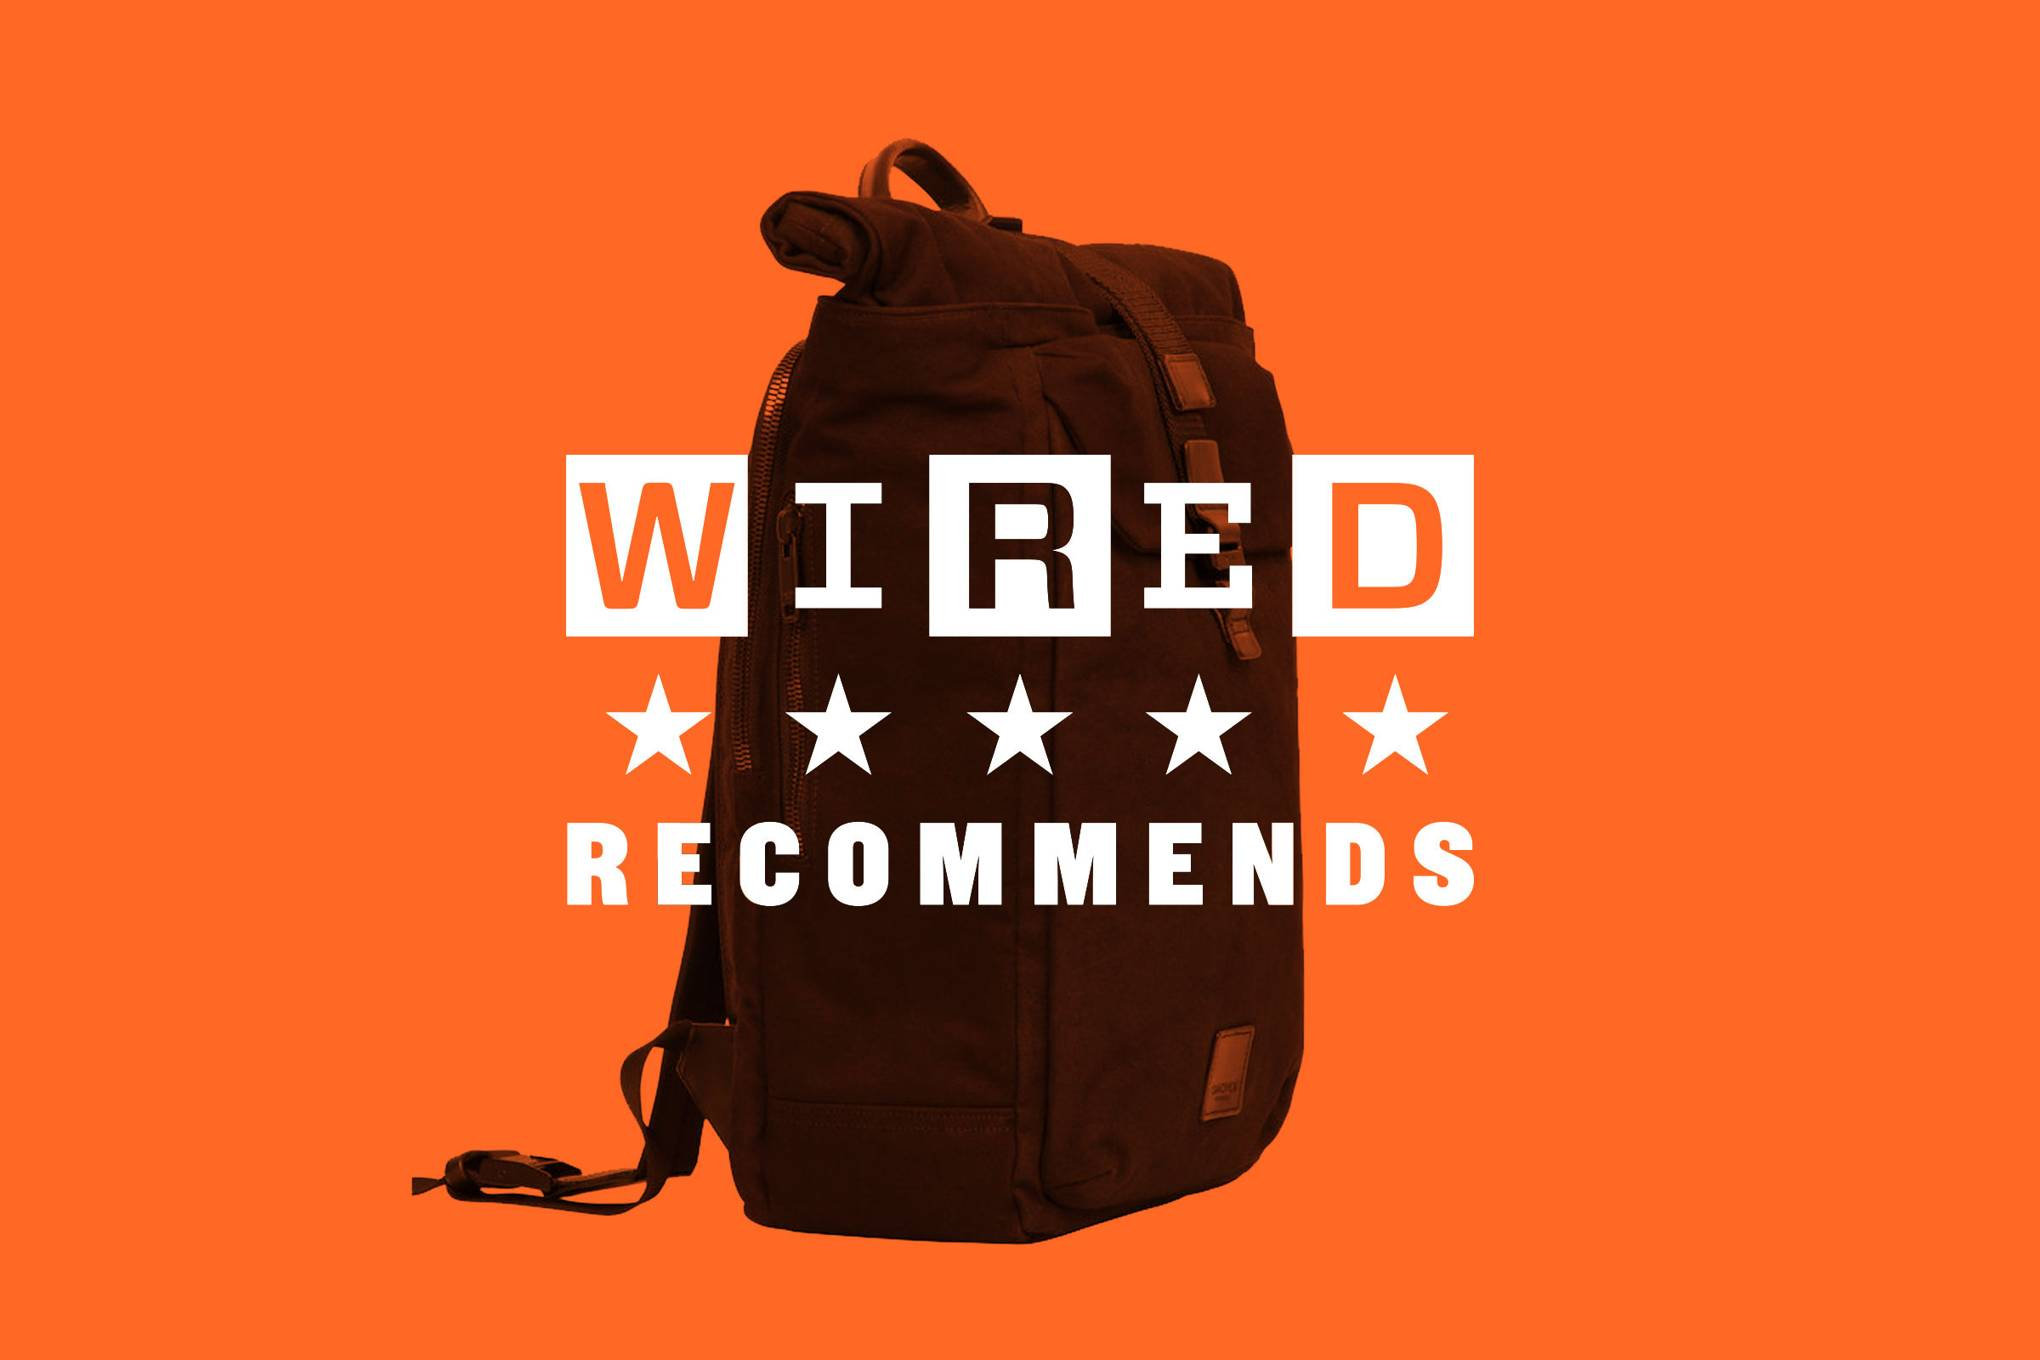 cc94176d8425 Best Backpack 2019: The bestpacks for travel and work | WIRED UK